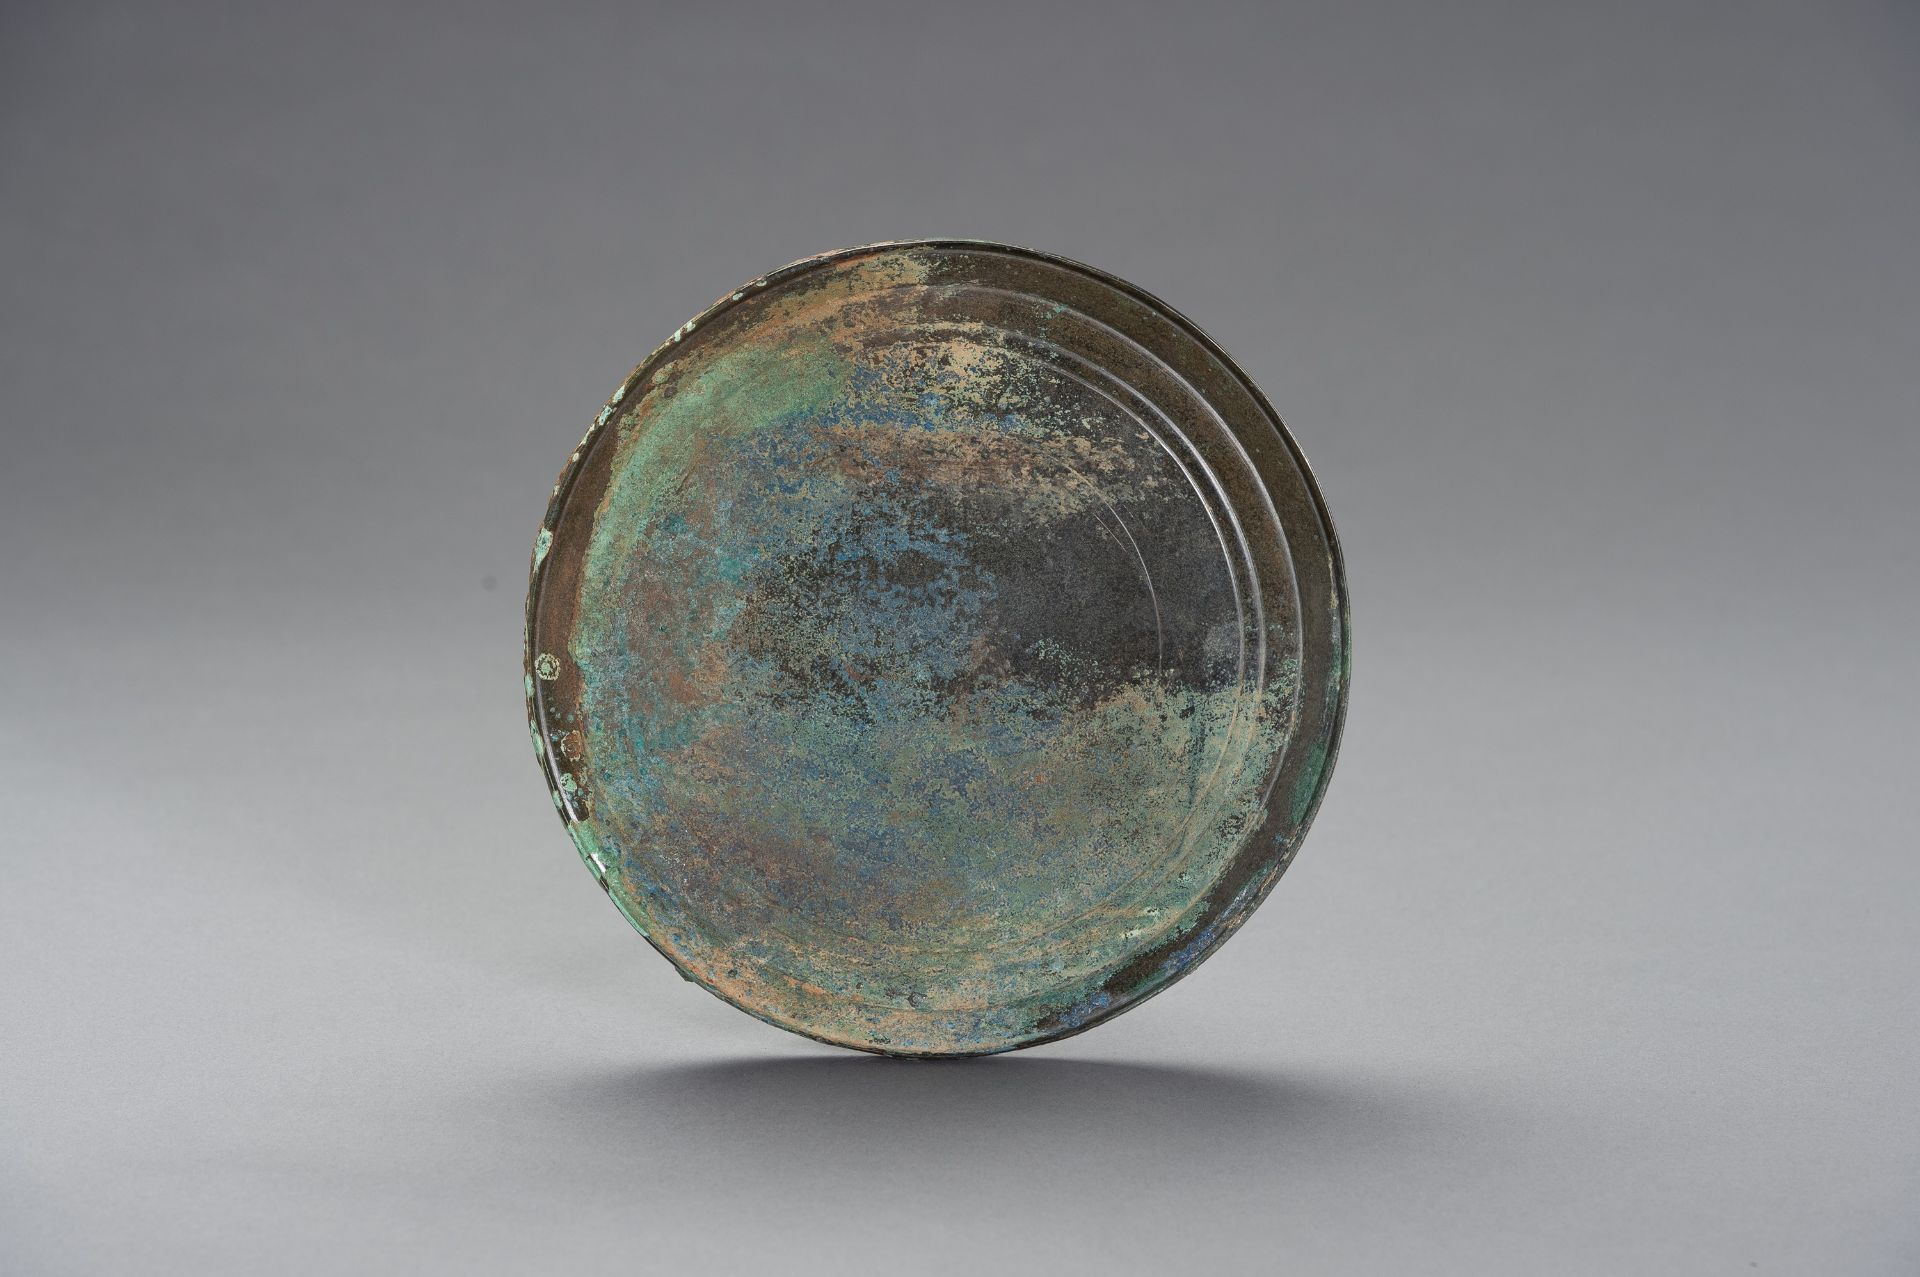 A LARGE BRONZE MIRROR - Image 2 of 8